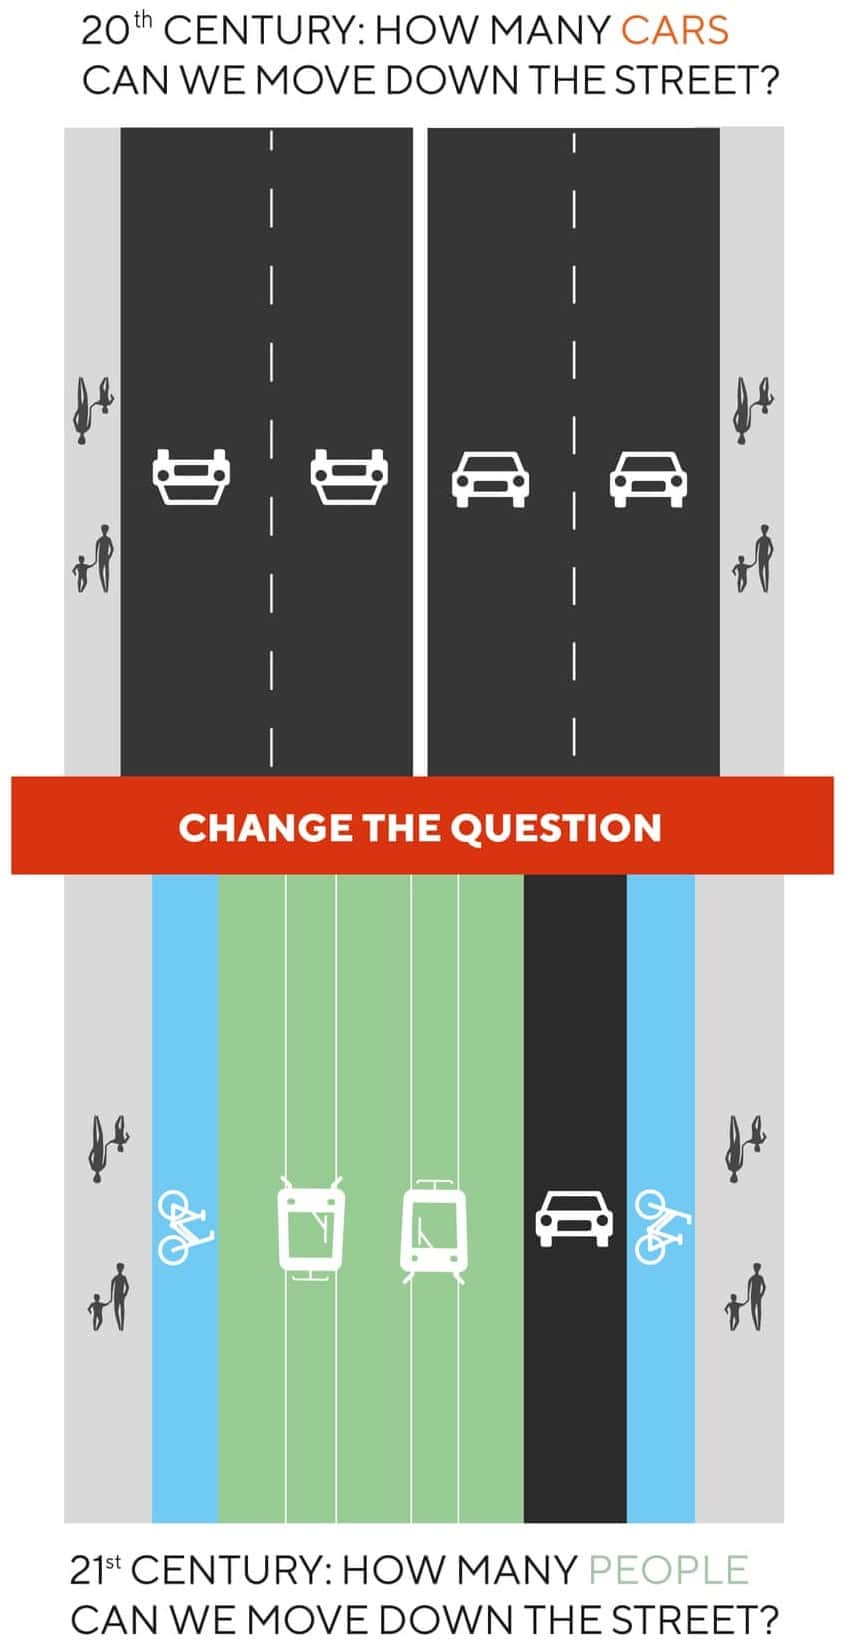 Moving people, not cars - 20th century: how many cars can we move down the street versus 21st century: how many people cam we move down the street